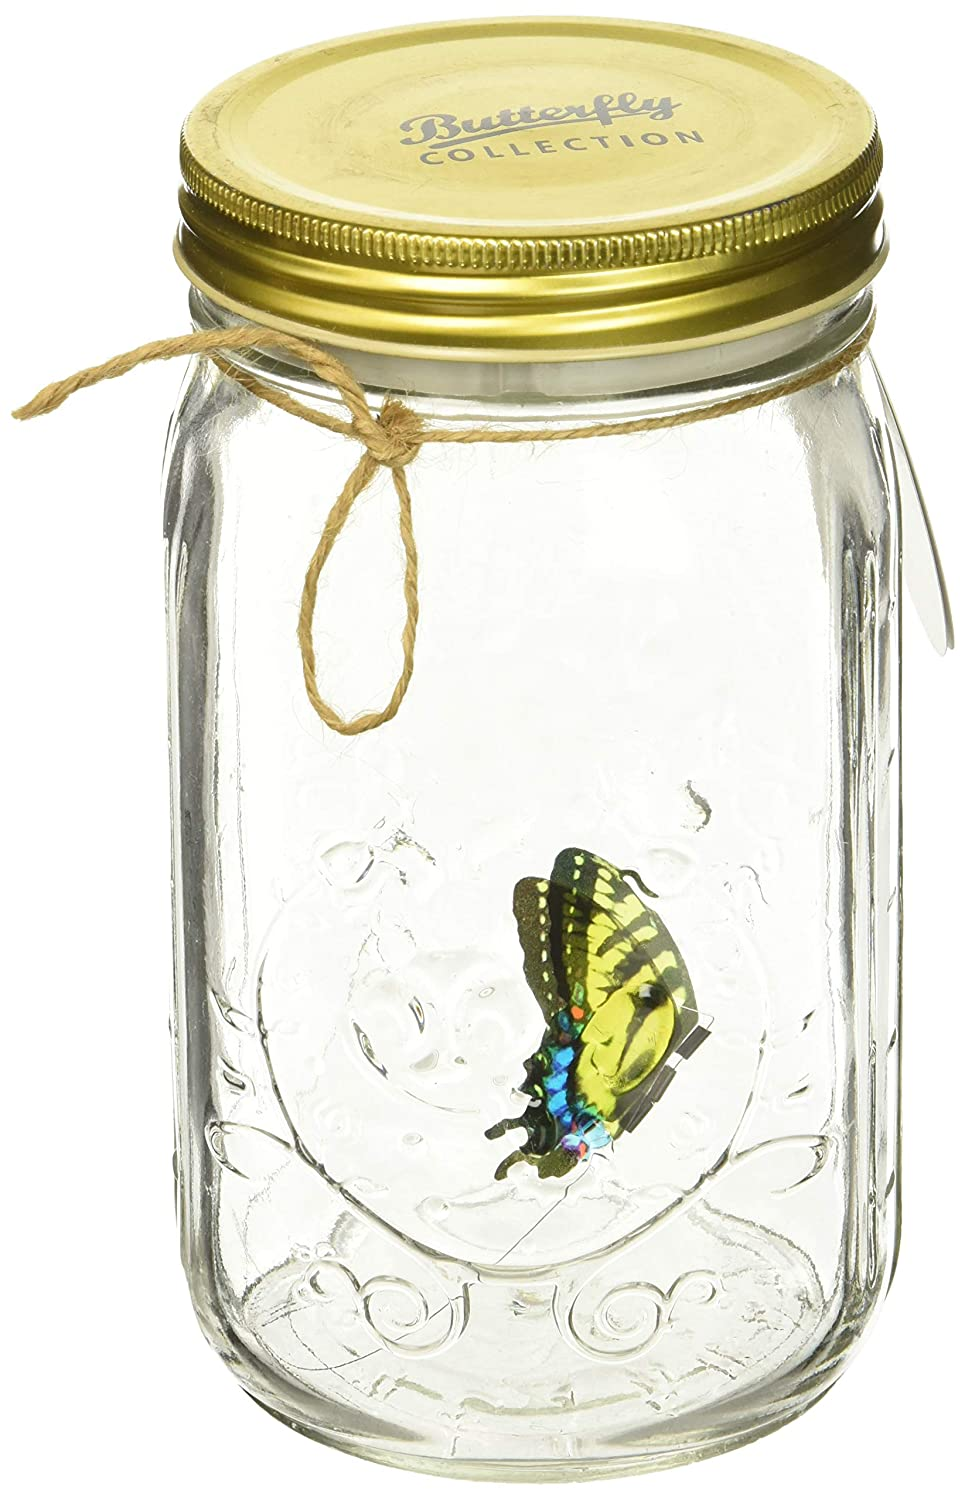 My Butterfly Collection - Animated Butterfly in a Jar - Yellow Swallowtail by My Butterfly Collection B003YUU3TG